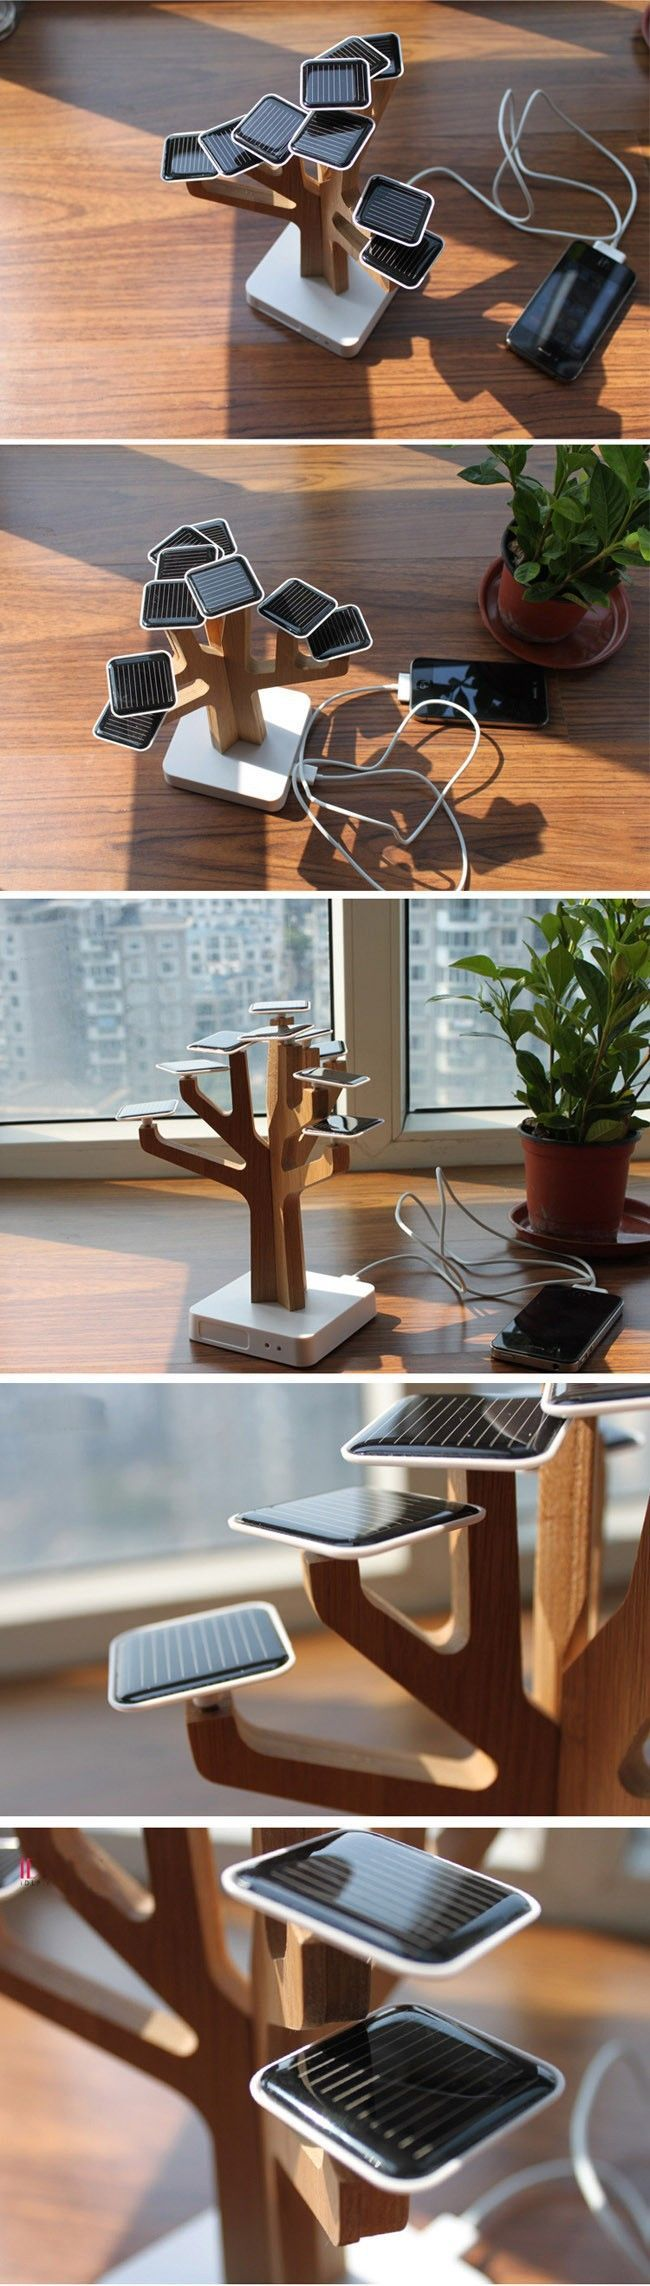 The Photo voltaic Suntree Charger is a photo voltaic powered charger for your mobile…